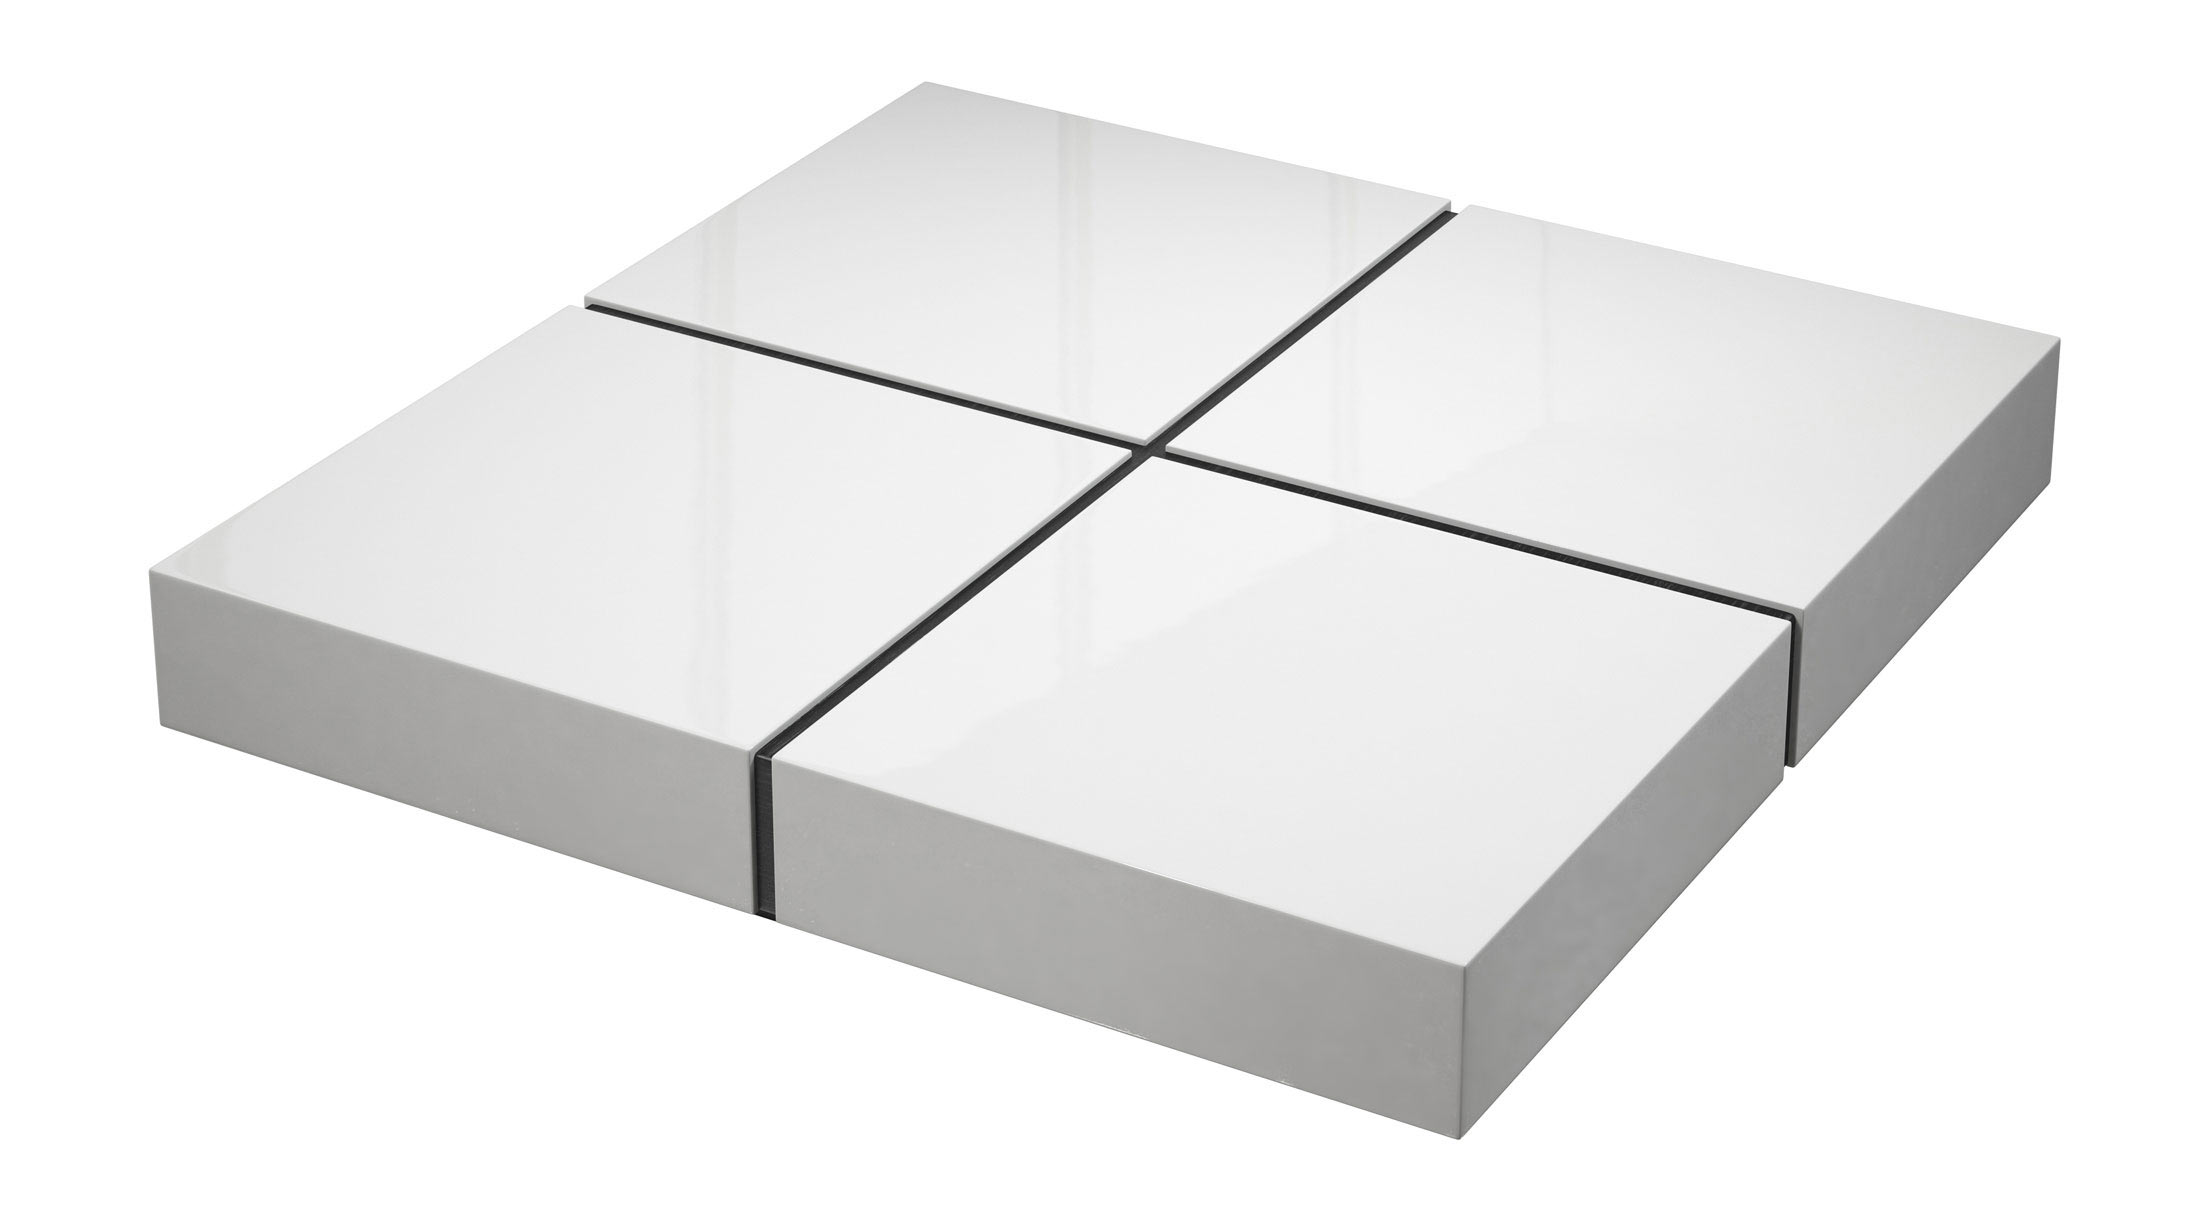 Dean Coffee Table White Lacquer by Modloft